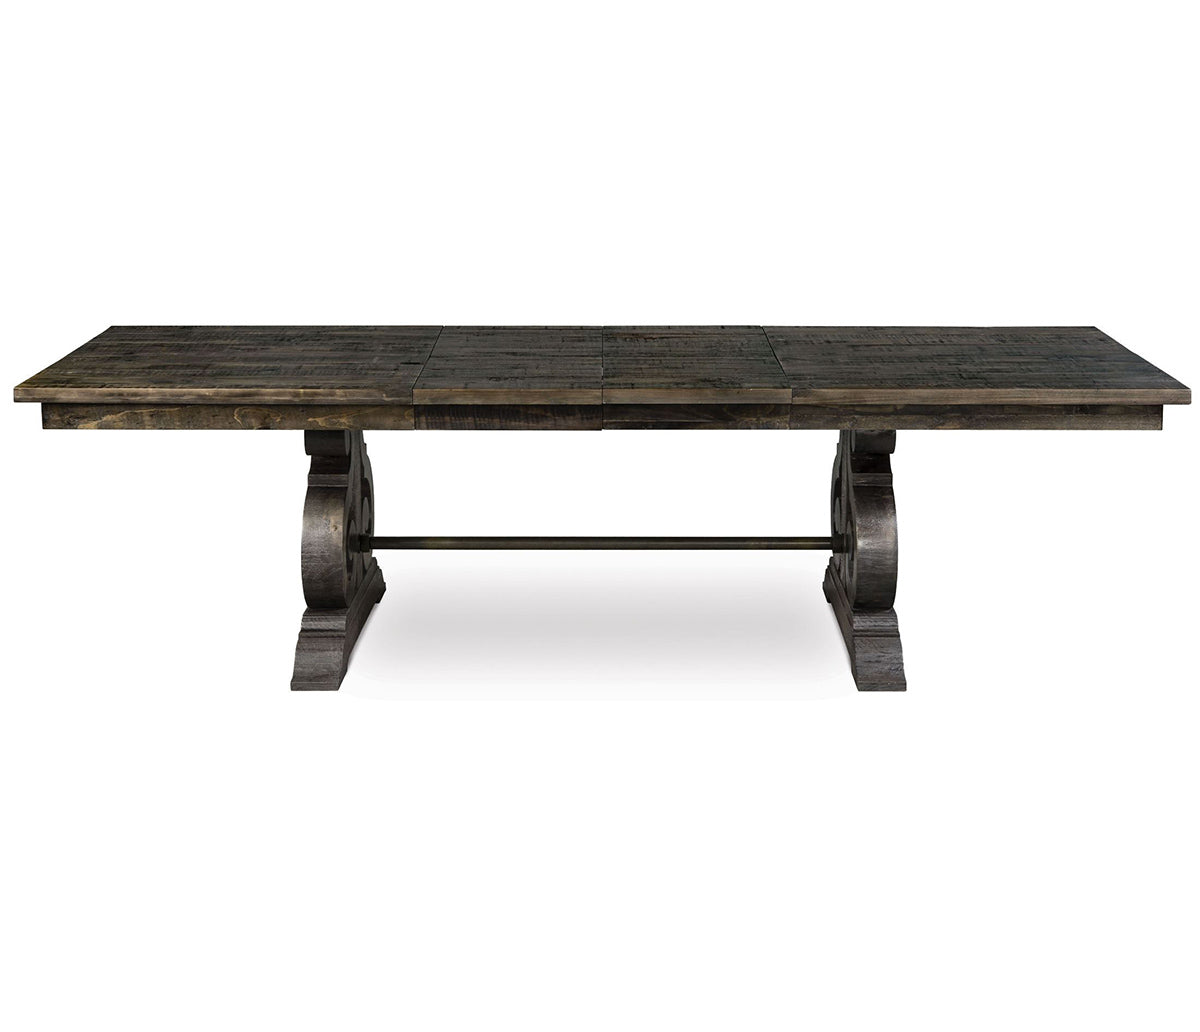 bellamy dining table jag s furniture mattress rh jagsfurniture ca bellamy dining table by magnussen Modern Dining Table